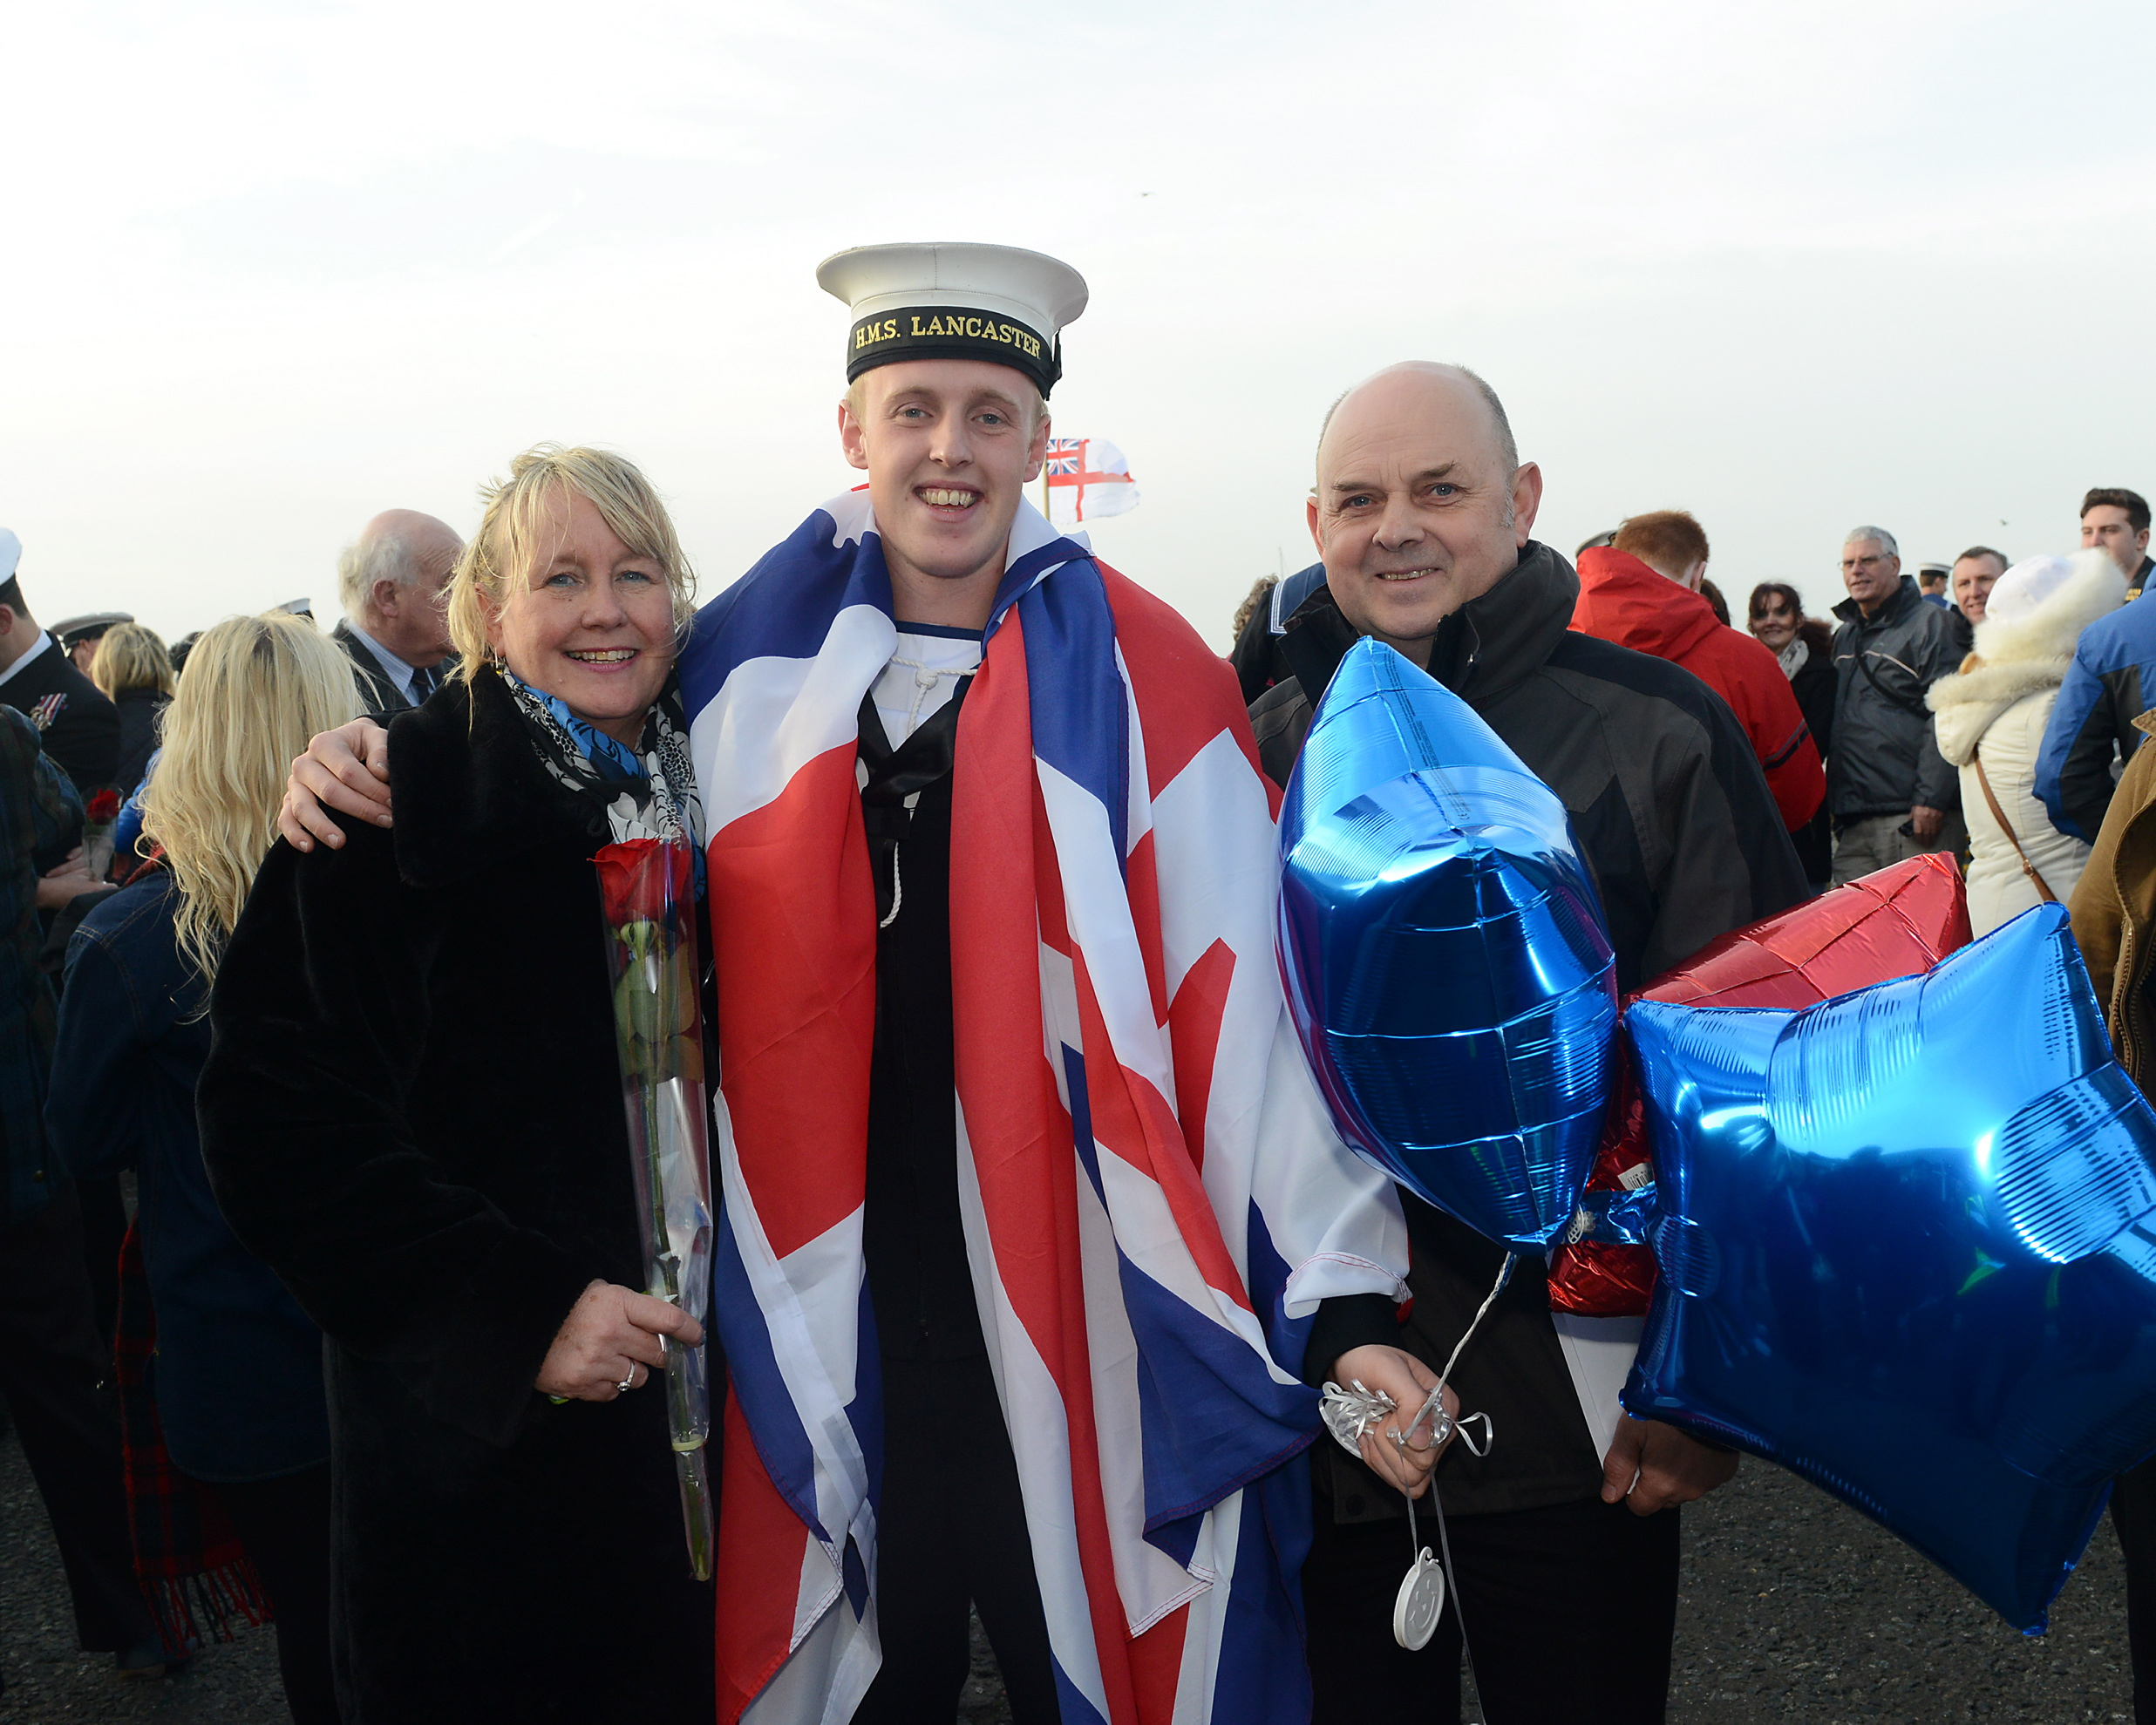 Pictured: ET CIS Sam Scott with his mum and dad, Janice Scott and William Scott  HMS LANCASTER RETURNS FROM  OPERATIONS IN NORTH AND SOUTH ATLANTIC  HMS Lancaster was cheered home by hundreds of loved ones as she returned to Portsmouth today (December 17) from a nine-month deployment to the North and South Atlantic.  The Type 23 frigate has steamed more than 35,000 nautical miles across four oceans and has visited 23 ports in 18 counties.  The ship – which left the UK in March – was the first Royal Navy vessel to deploy with the new Wildcat maritime attack helicopter.  She was also the first ship to sail on operations with ship's company wearing the Navy's new working uniform.  During nine months away HMS Lancaster has delivered an intensive programme of defence engagement and maritime security from the Caribbean to West Africa.  Image: L(Phot) Paul Hall Consent held at FRPU(E)